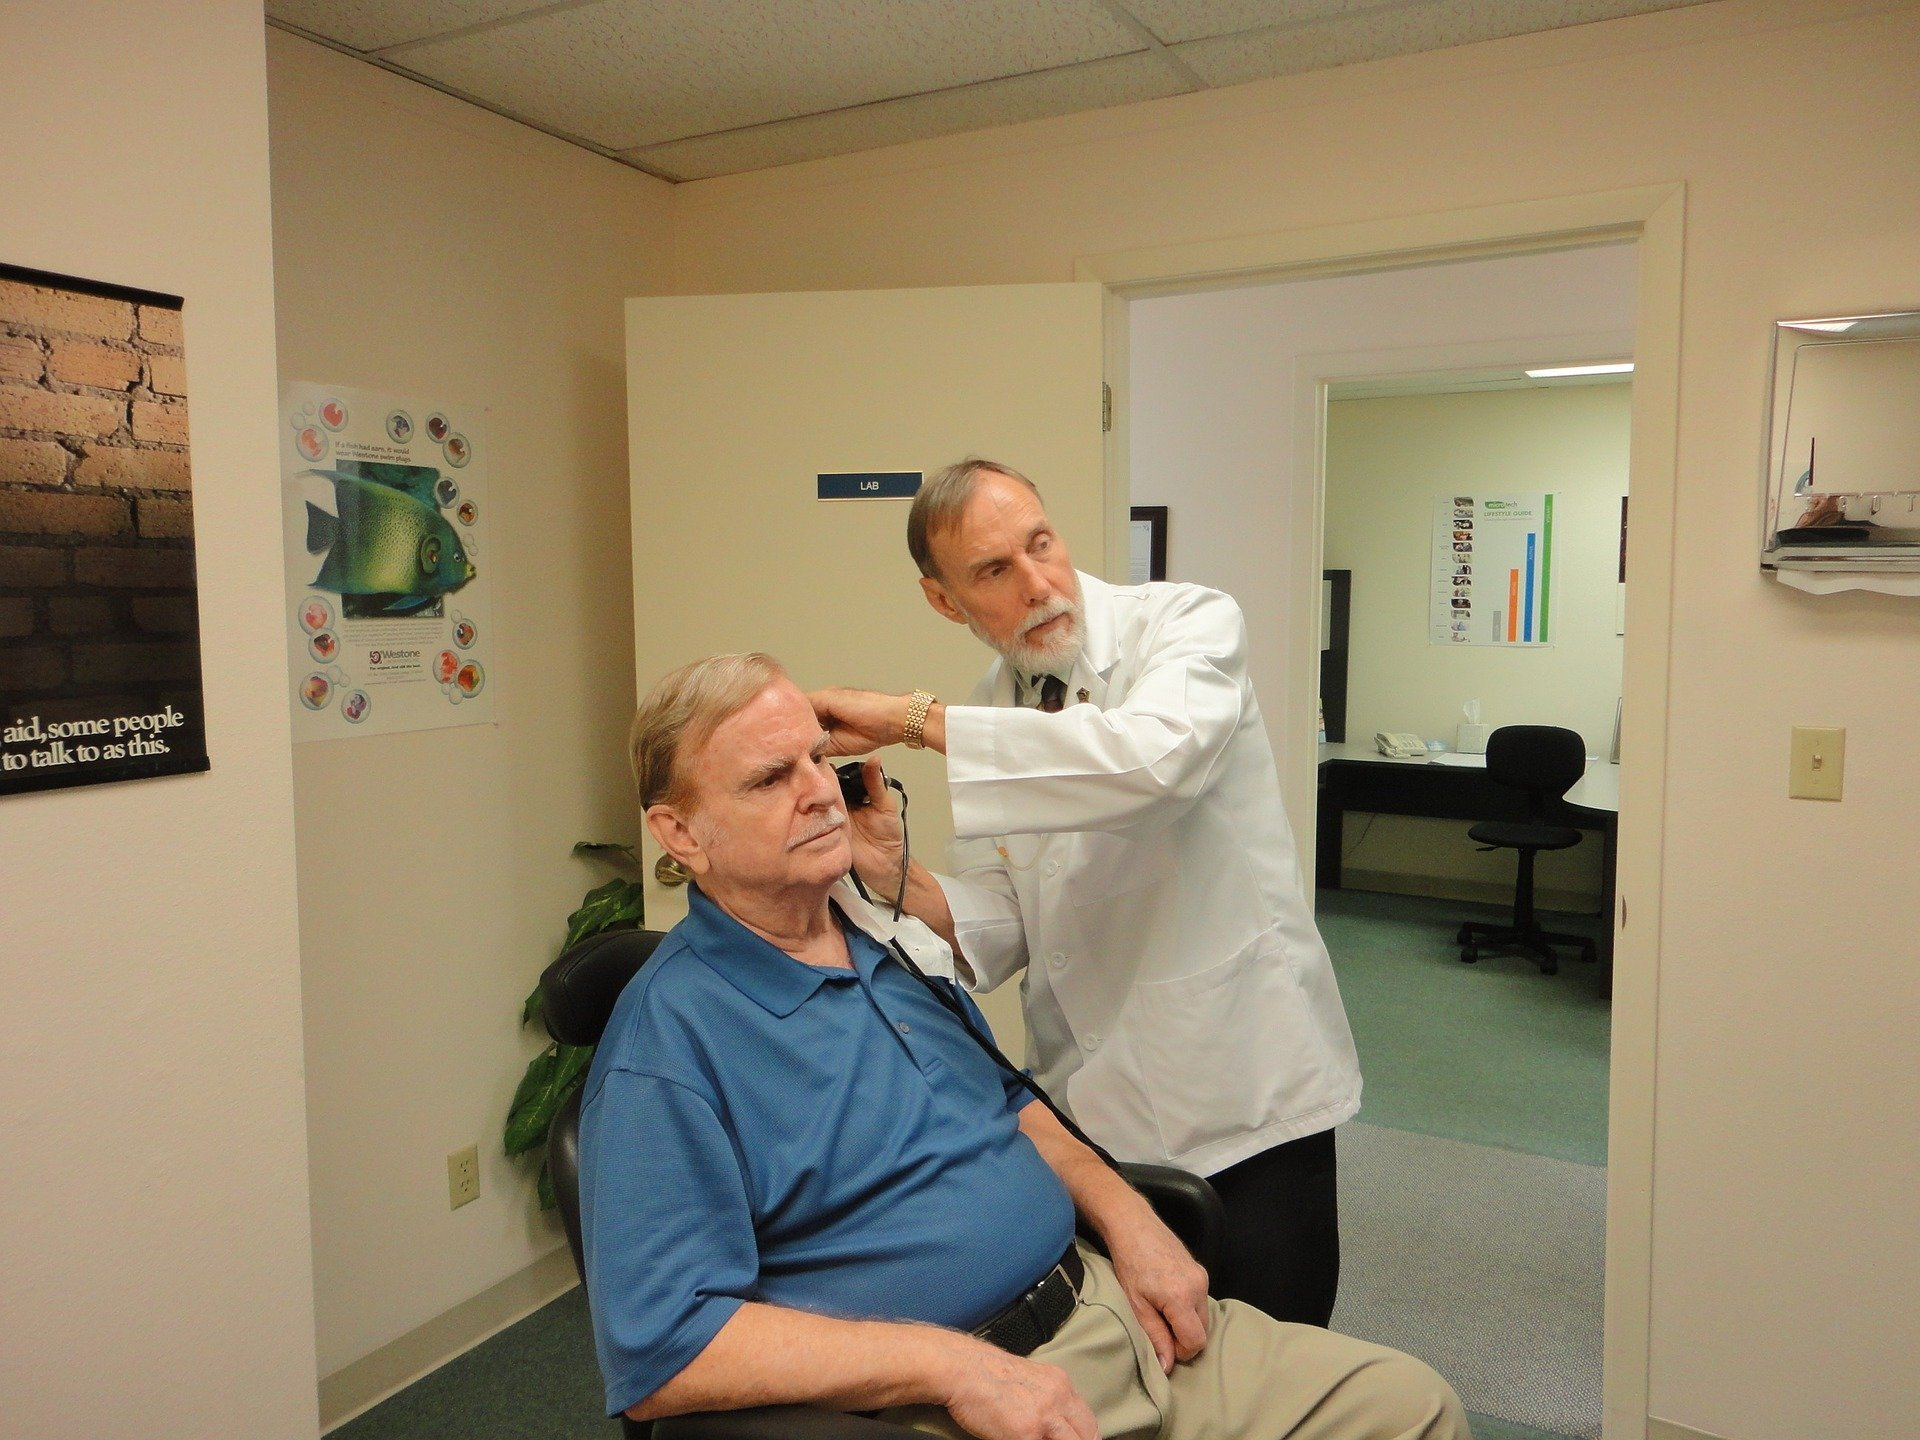 An elderly man having his ears tested by a doctor   Photo: Pixabay/williamsje1